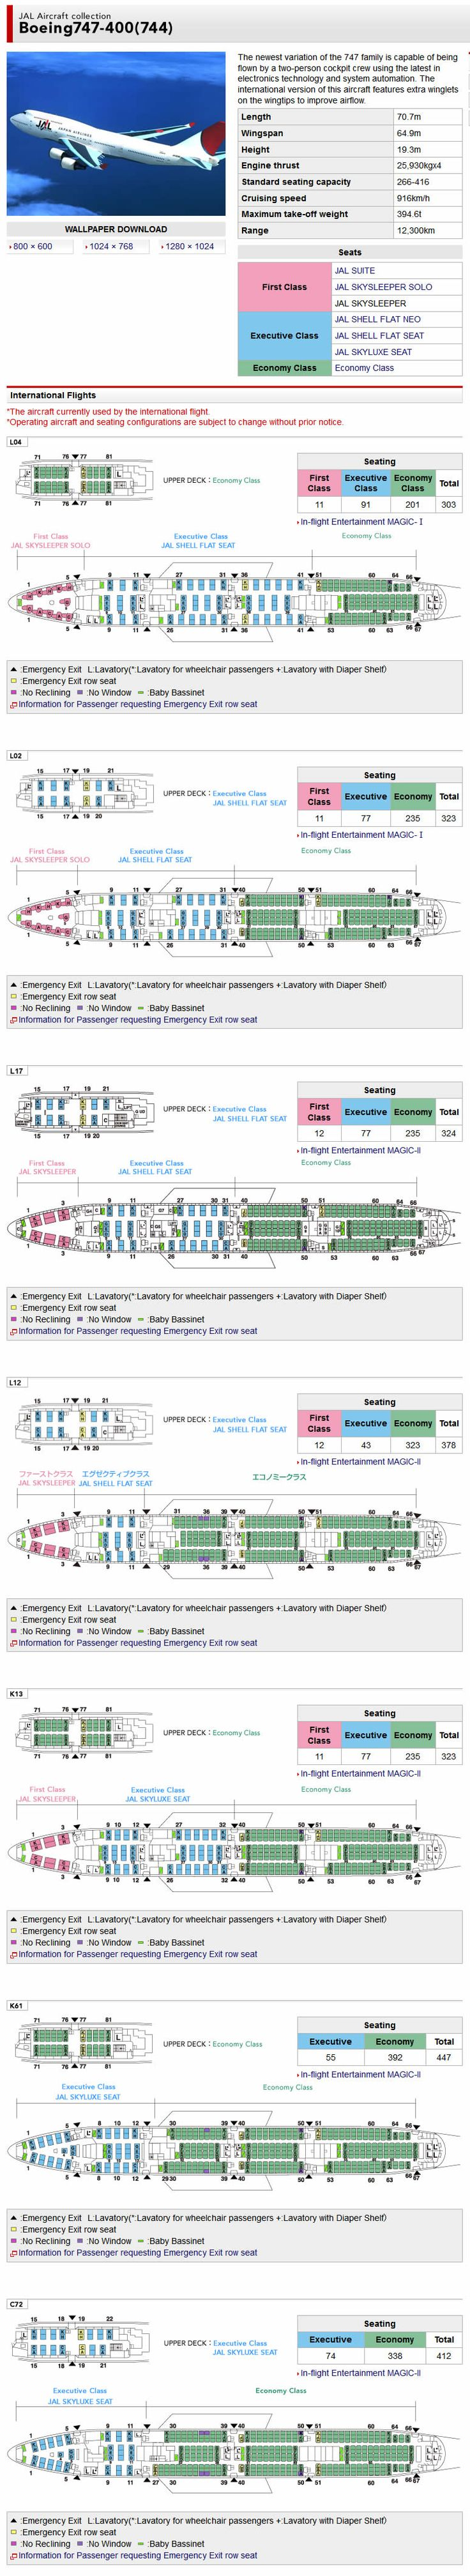 JAL JAPAN AIR AIRLINES BOEING 747-400 AIRCRAFT SEATING CHART